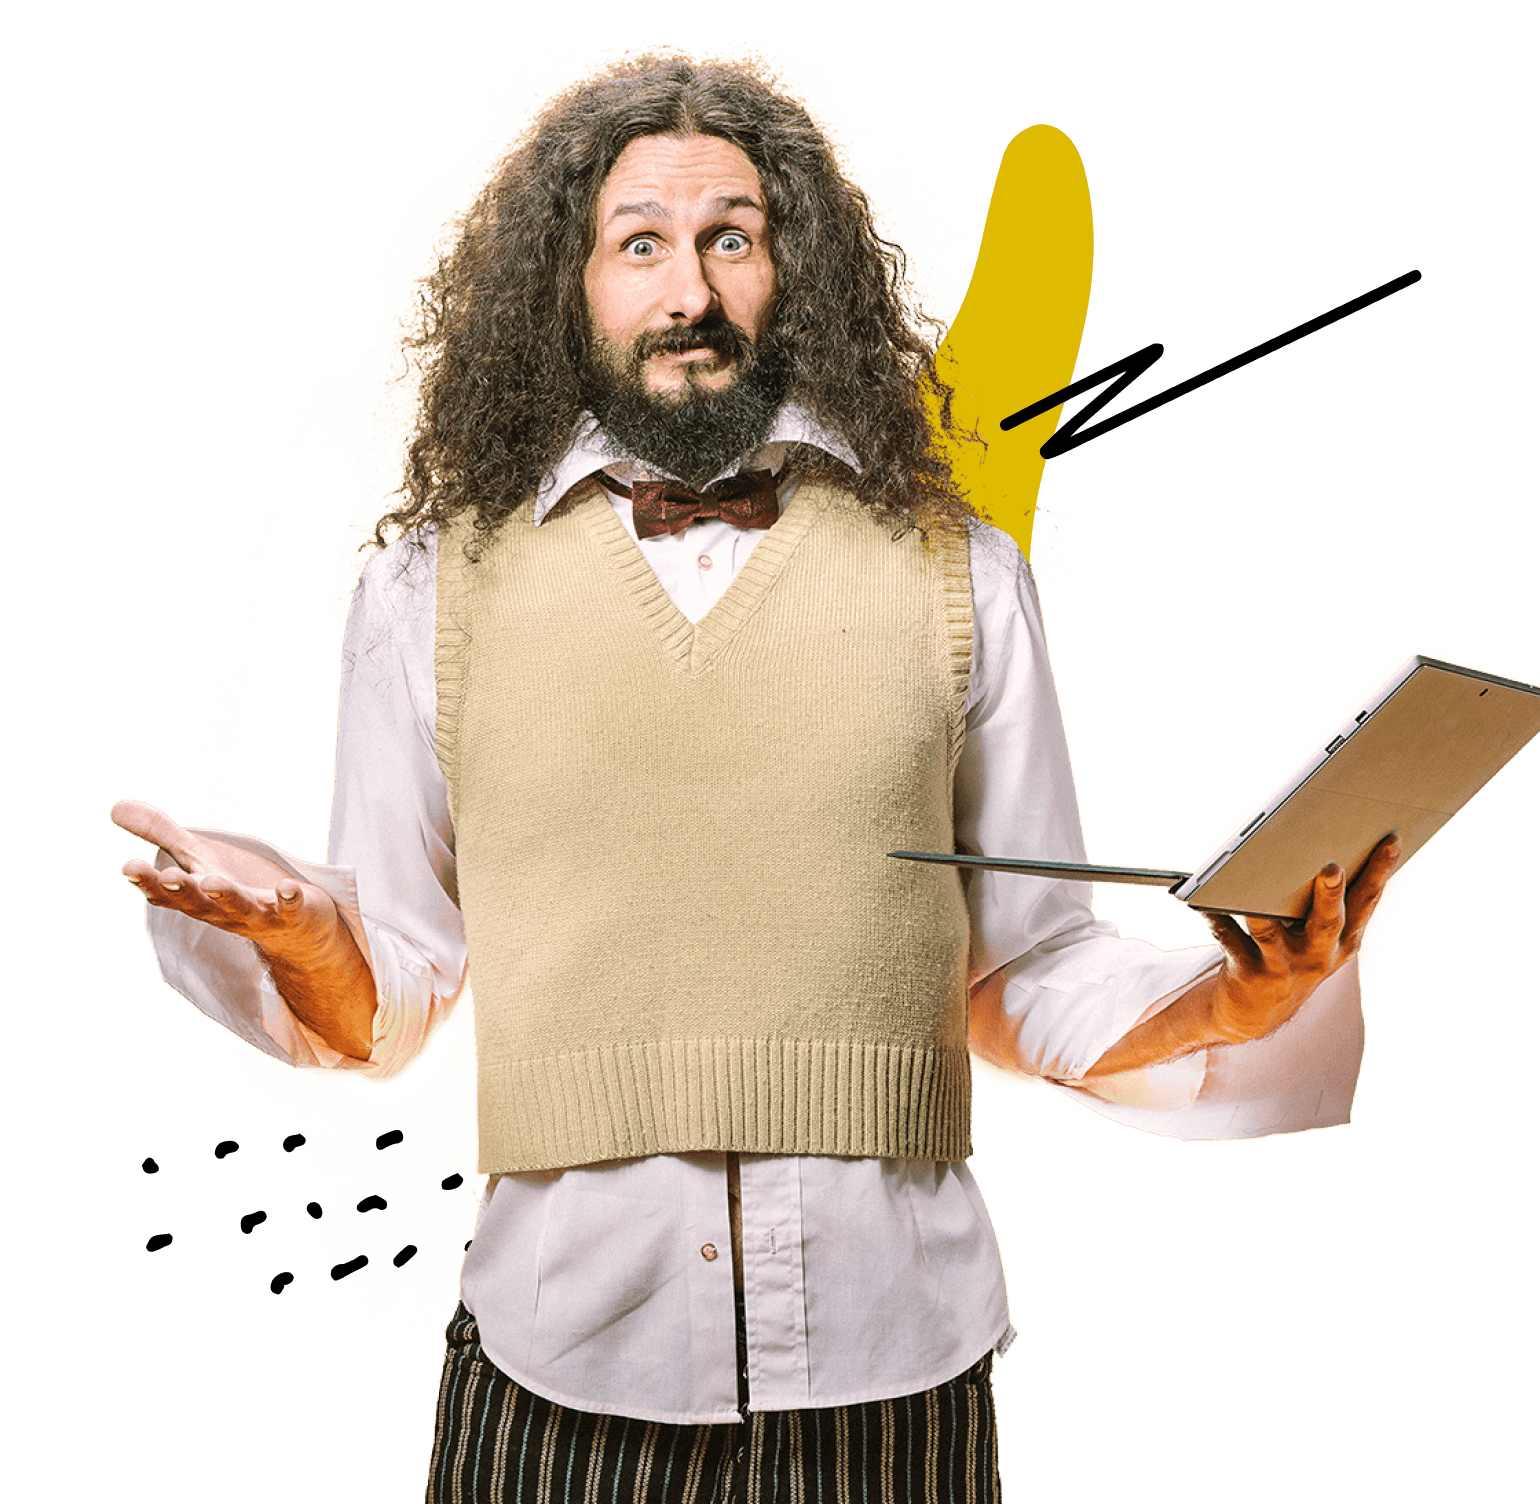 SAT Prep Teacher, Samson, a man with long curly hair wearing a swearter vest, holding a laptop in one hand